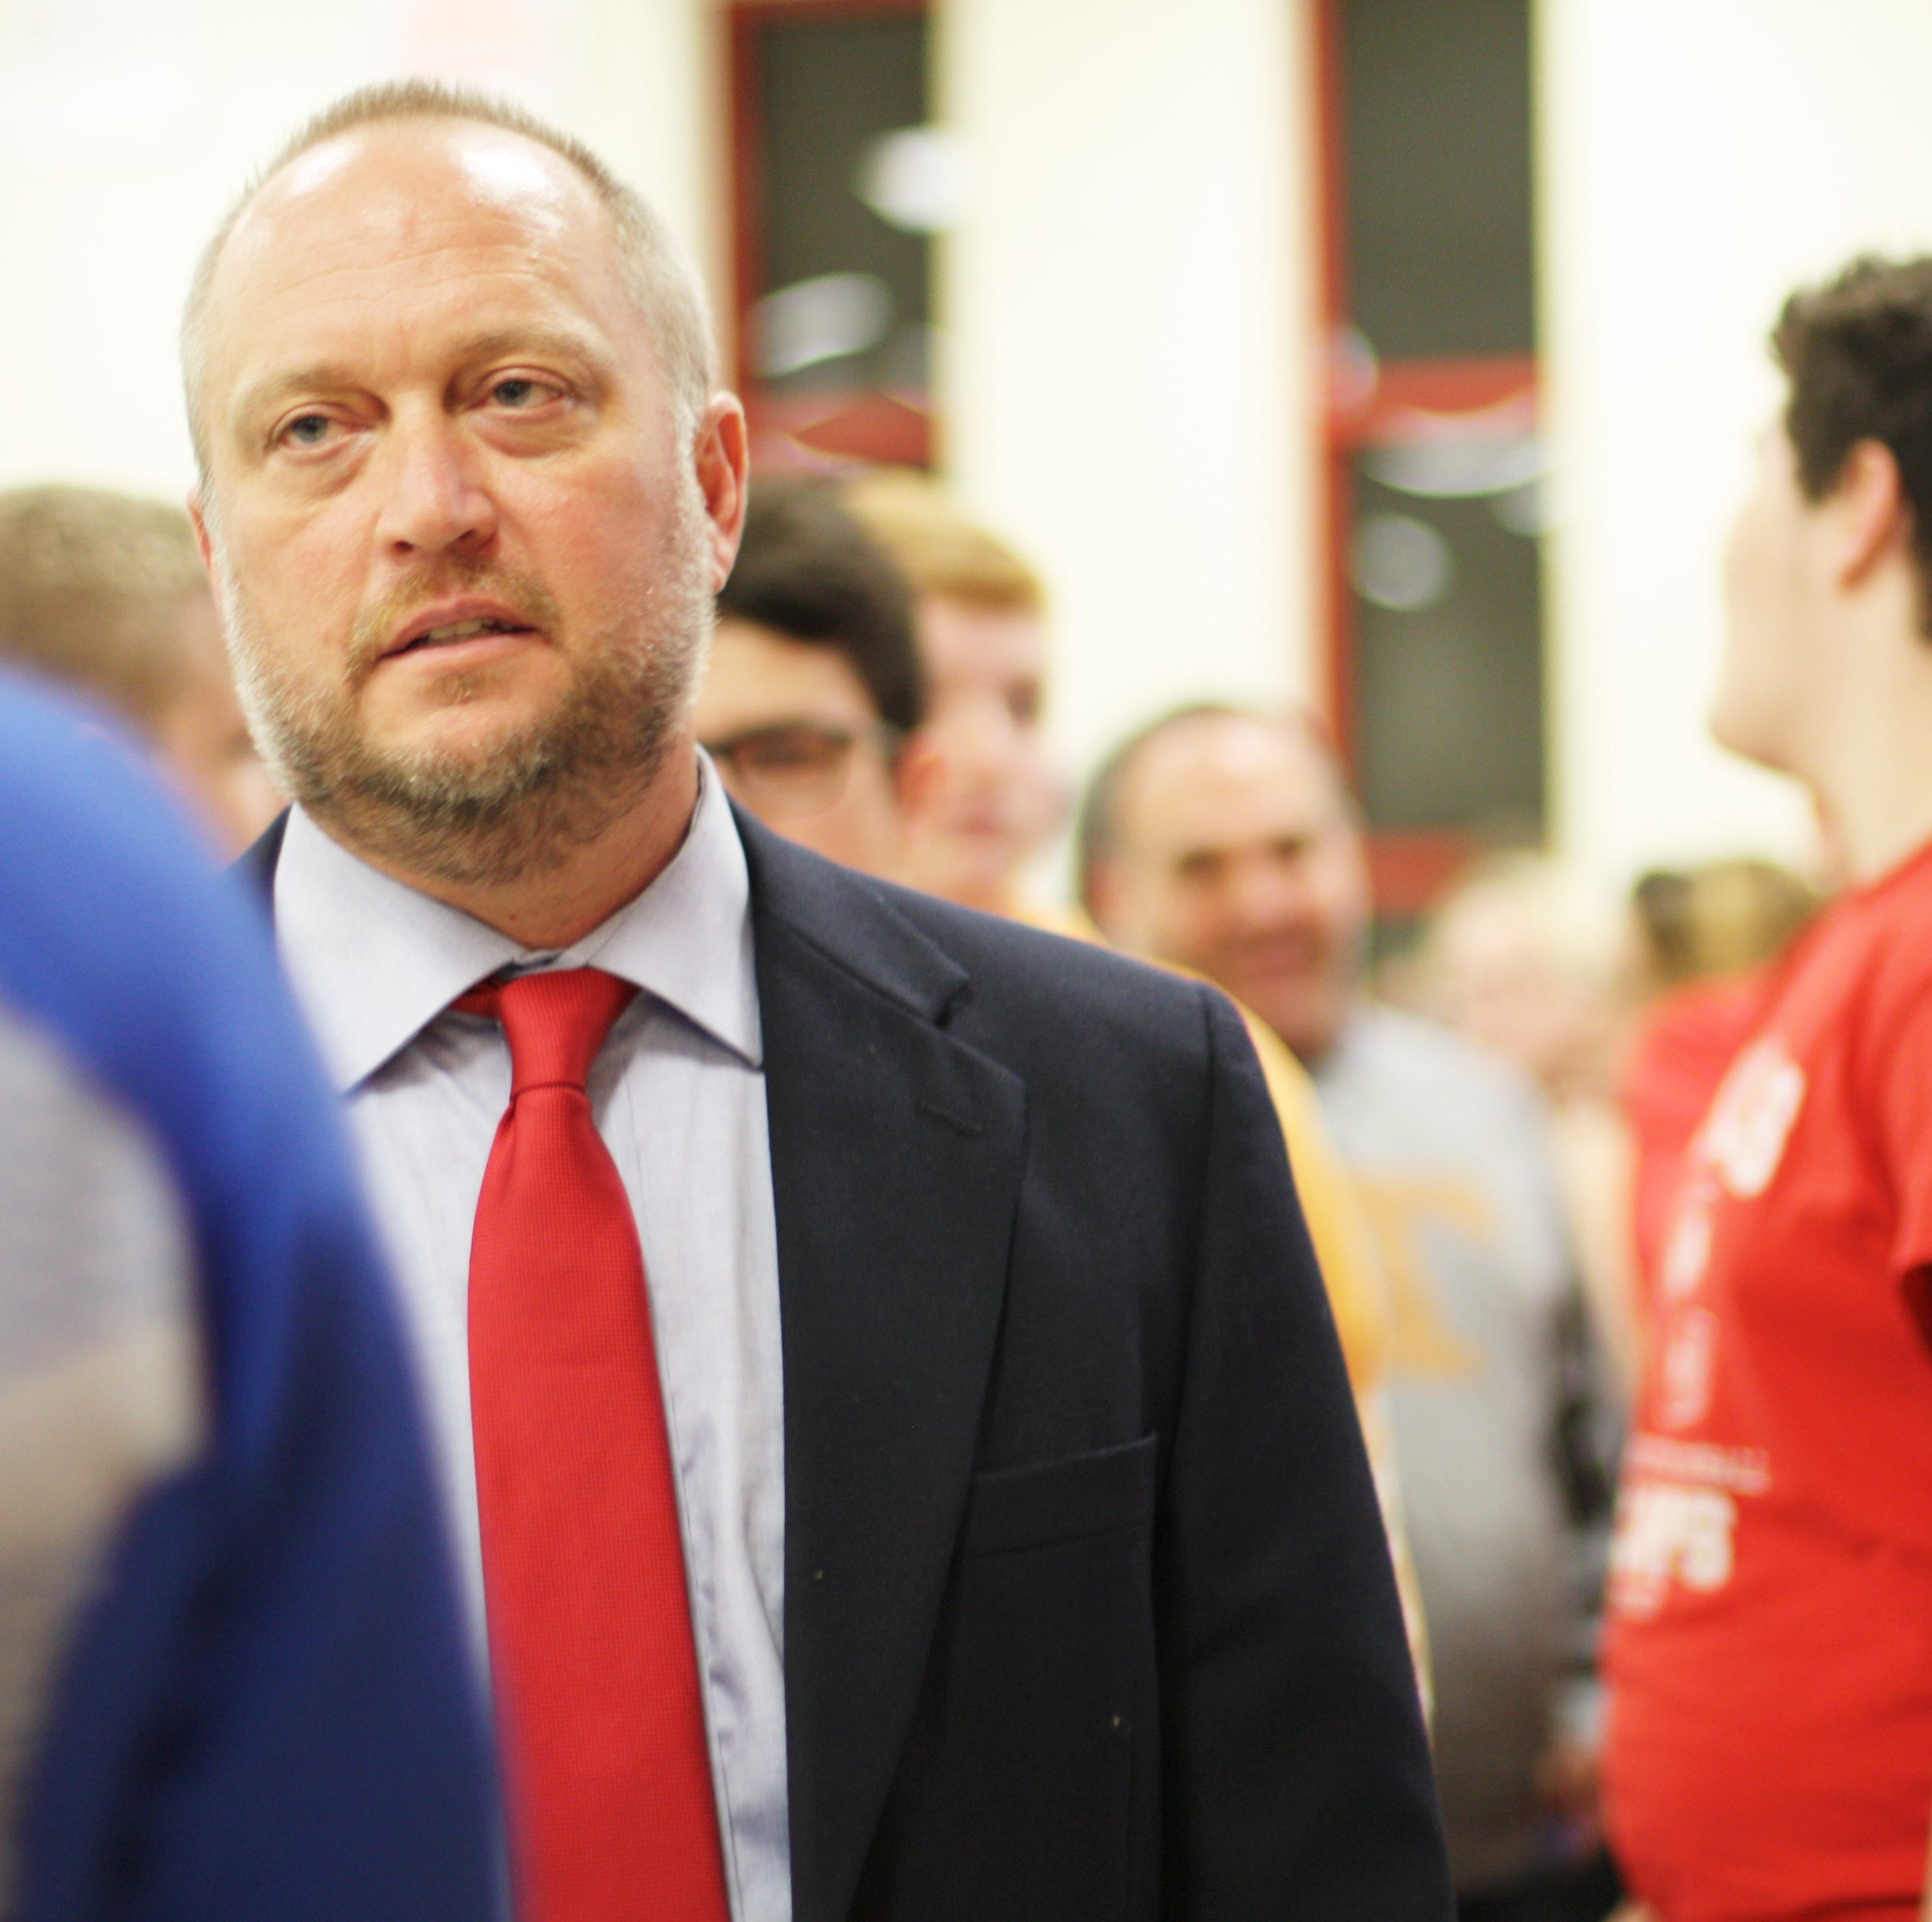 New Halls football coach Scott Cummings encourages team to 'Play for the H'